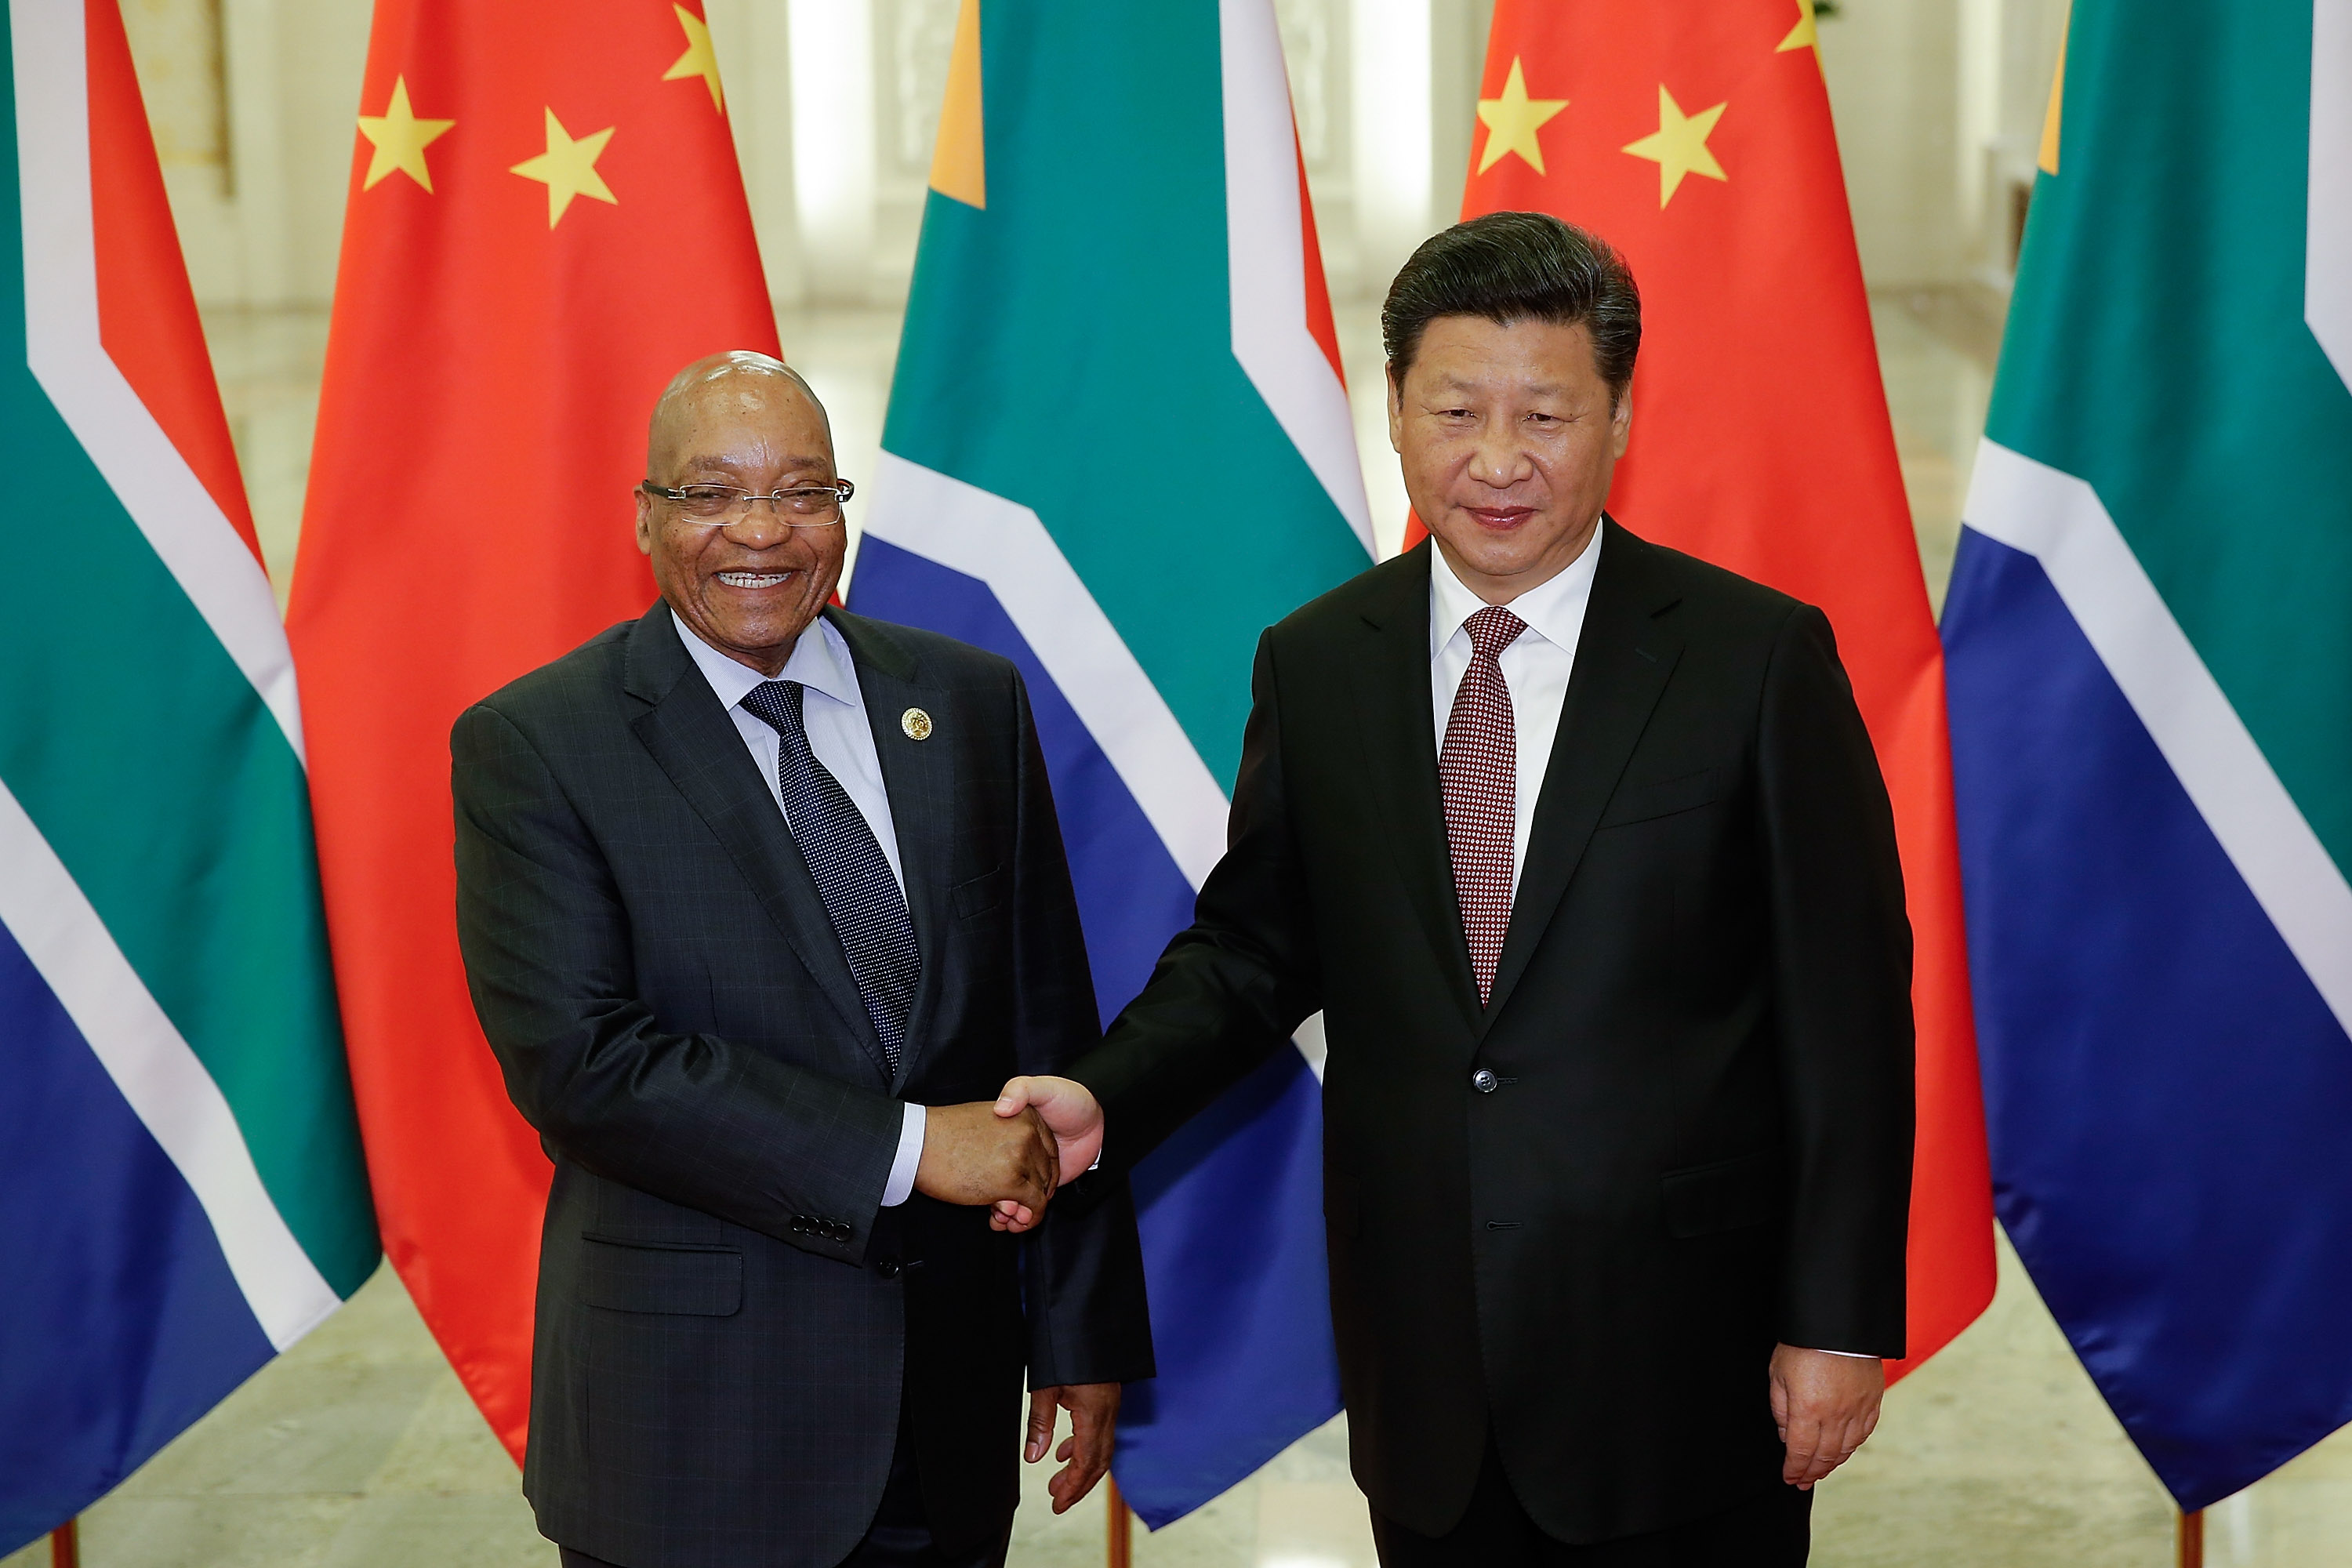 South African President Jacob Zuma Visits China